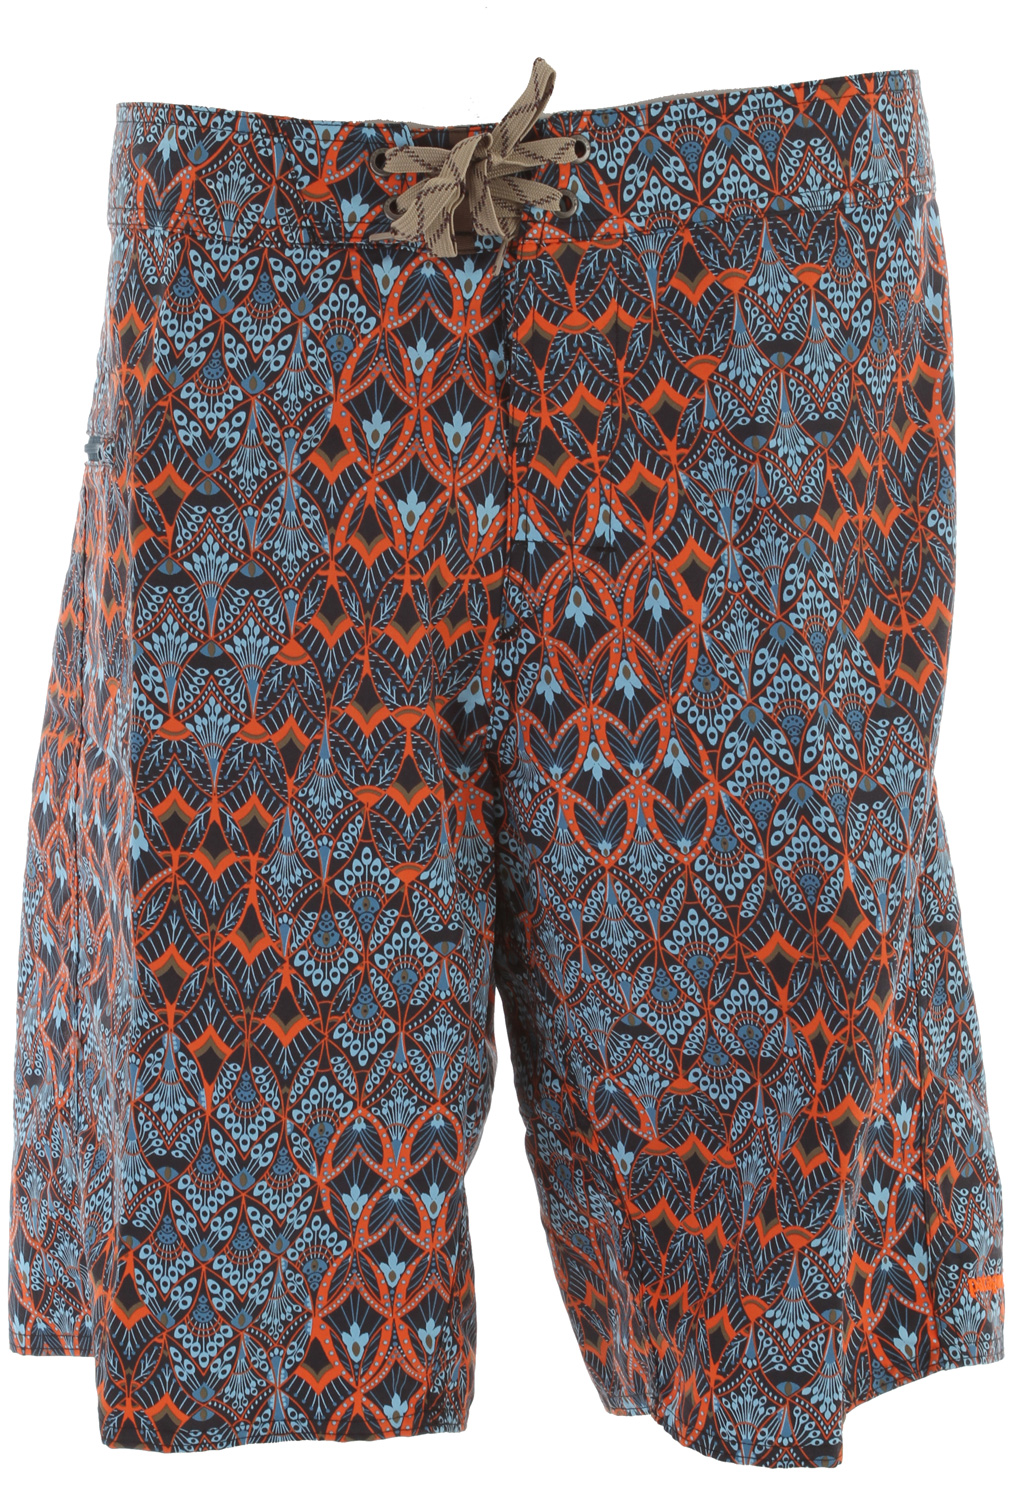 "Surf Tried and true, live-in-them board shorts made of Supplex nylon with a DWR (durable water repellent) finish; 21? outseam. fabric: 4.3-oz 100% Supplex nylon with a DWR finishKey Features of the Patagonia Wavefarer Boardshorts: Recyclable, lightweight nylon with a DWR finish is durable, quick-drying Board shorts have a 3-piece, self-lined waistband that contours to the hip, and a flat-lying fly with a single rubber button and ladder-lock drawstring closure Zippered horizontal pocket on the right thigh is self-draining and has a non-corrosive recyclable plastic zipper and an internal key loop Forward inseam at crotch eliminates chafing Hem hits at the knee Regular fit 21"" outseam - $59.00"